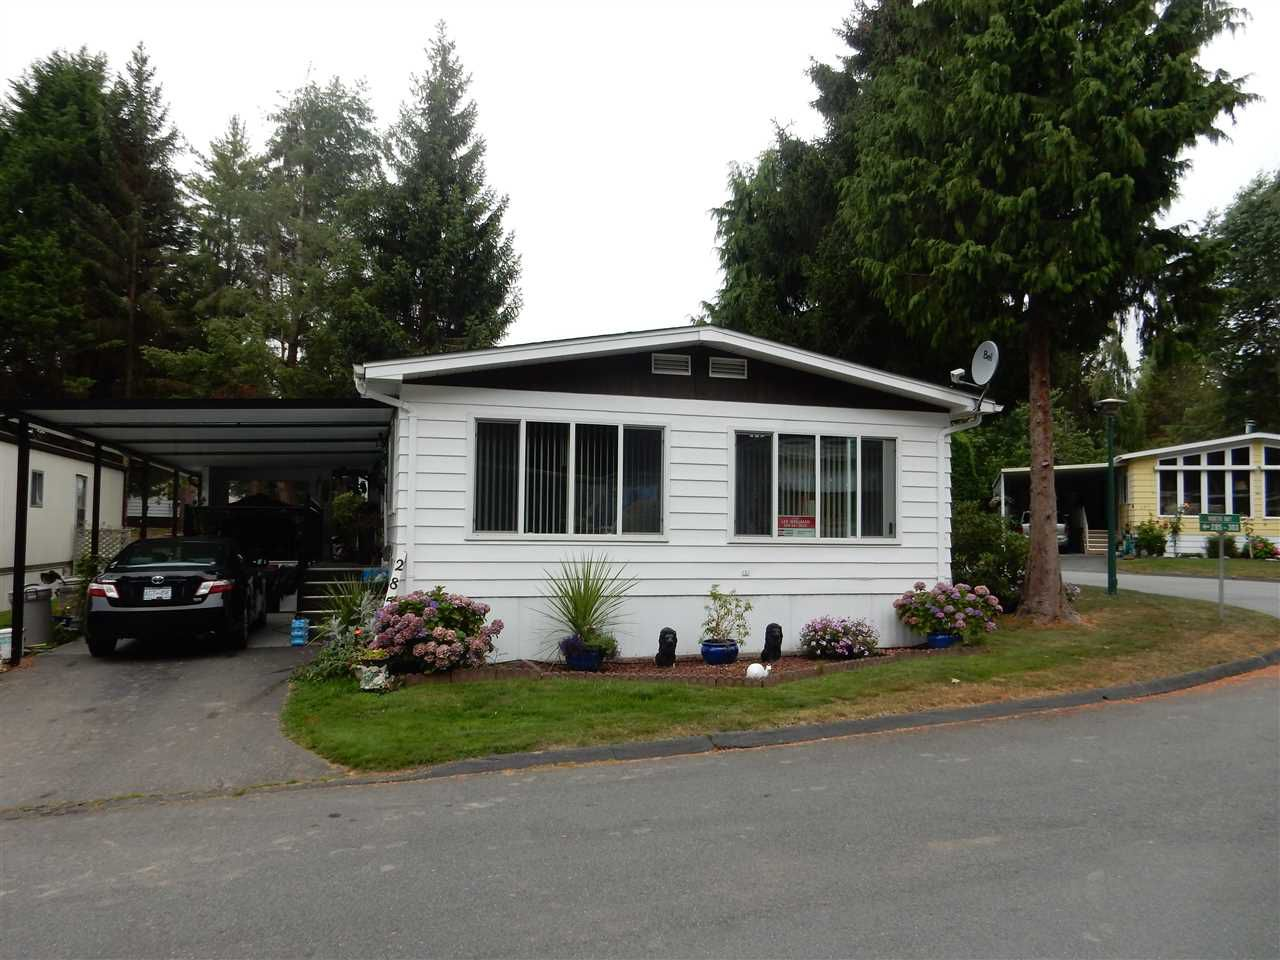 """Main Photo: 285 1840 160 Street in Surrey: King George Corridor Manufactured Home for sale in """"Breakaway Bays"""" (South Surrey White Rock)  : MLS®# R2099018"""